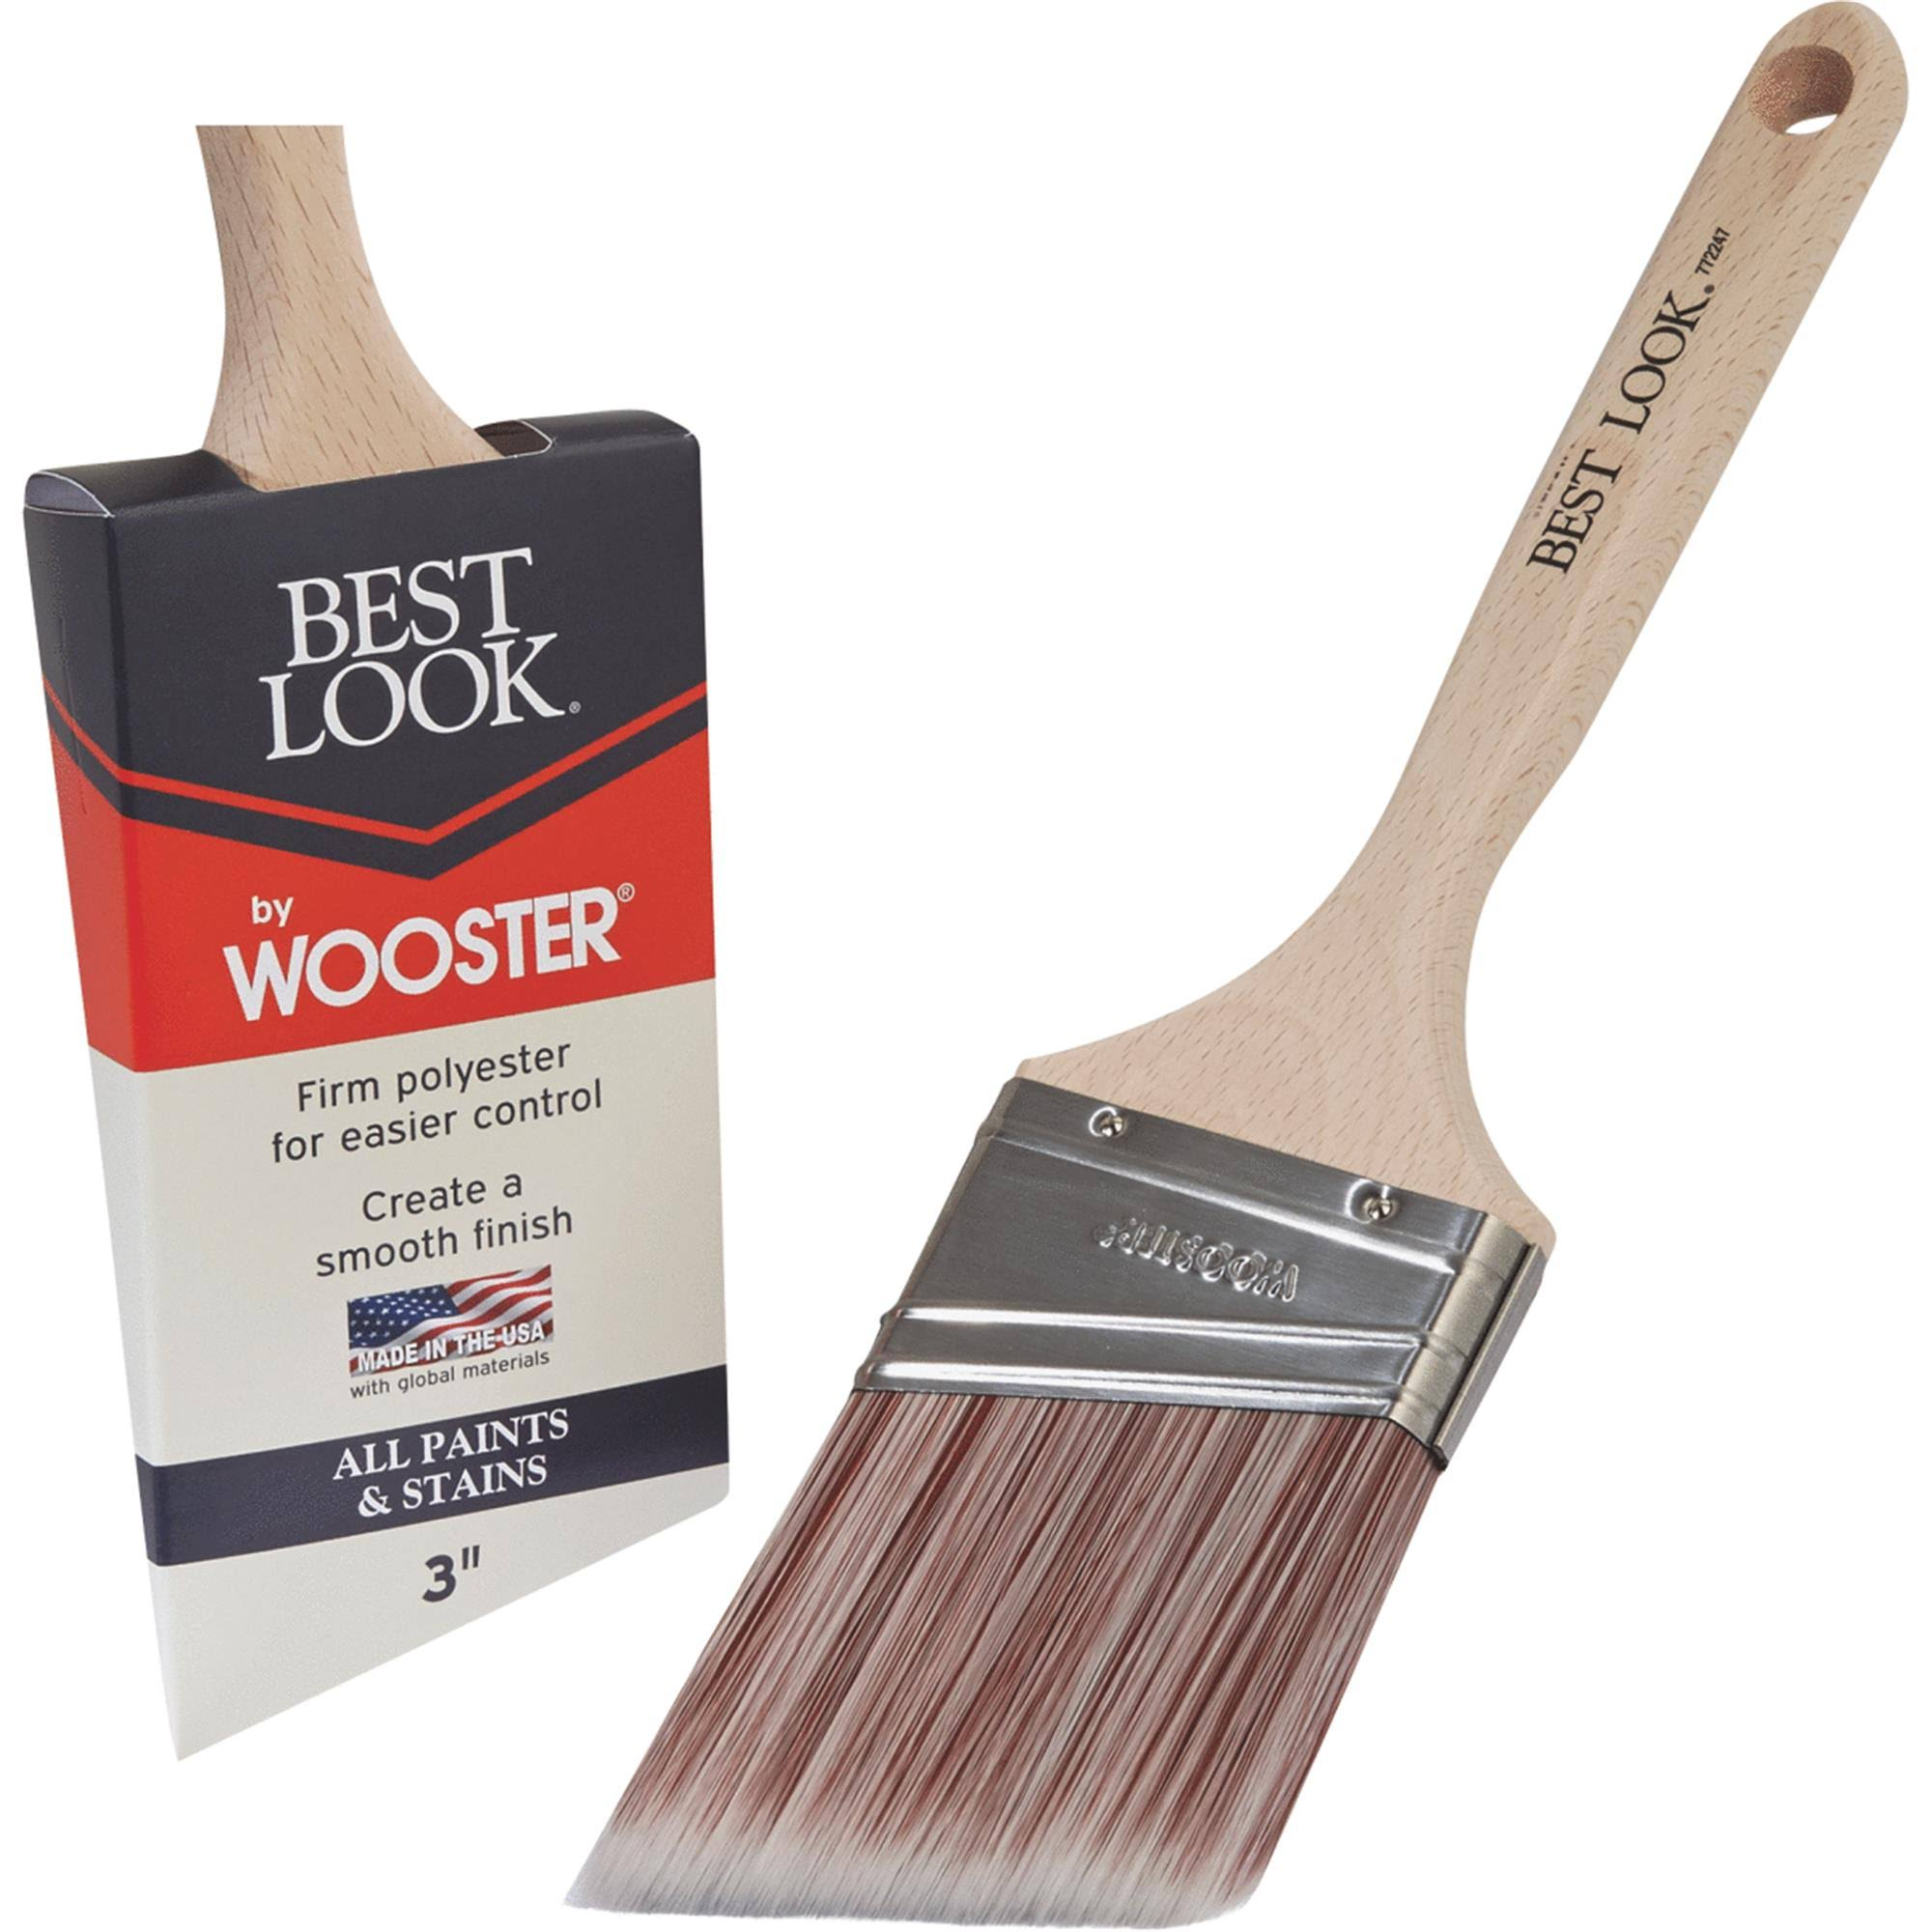 Best Look by Wooster Polyester Paint Brush - D4022-3